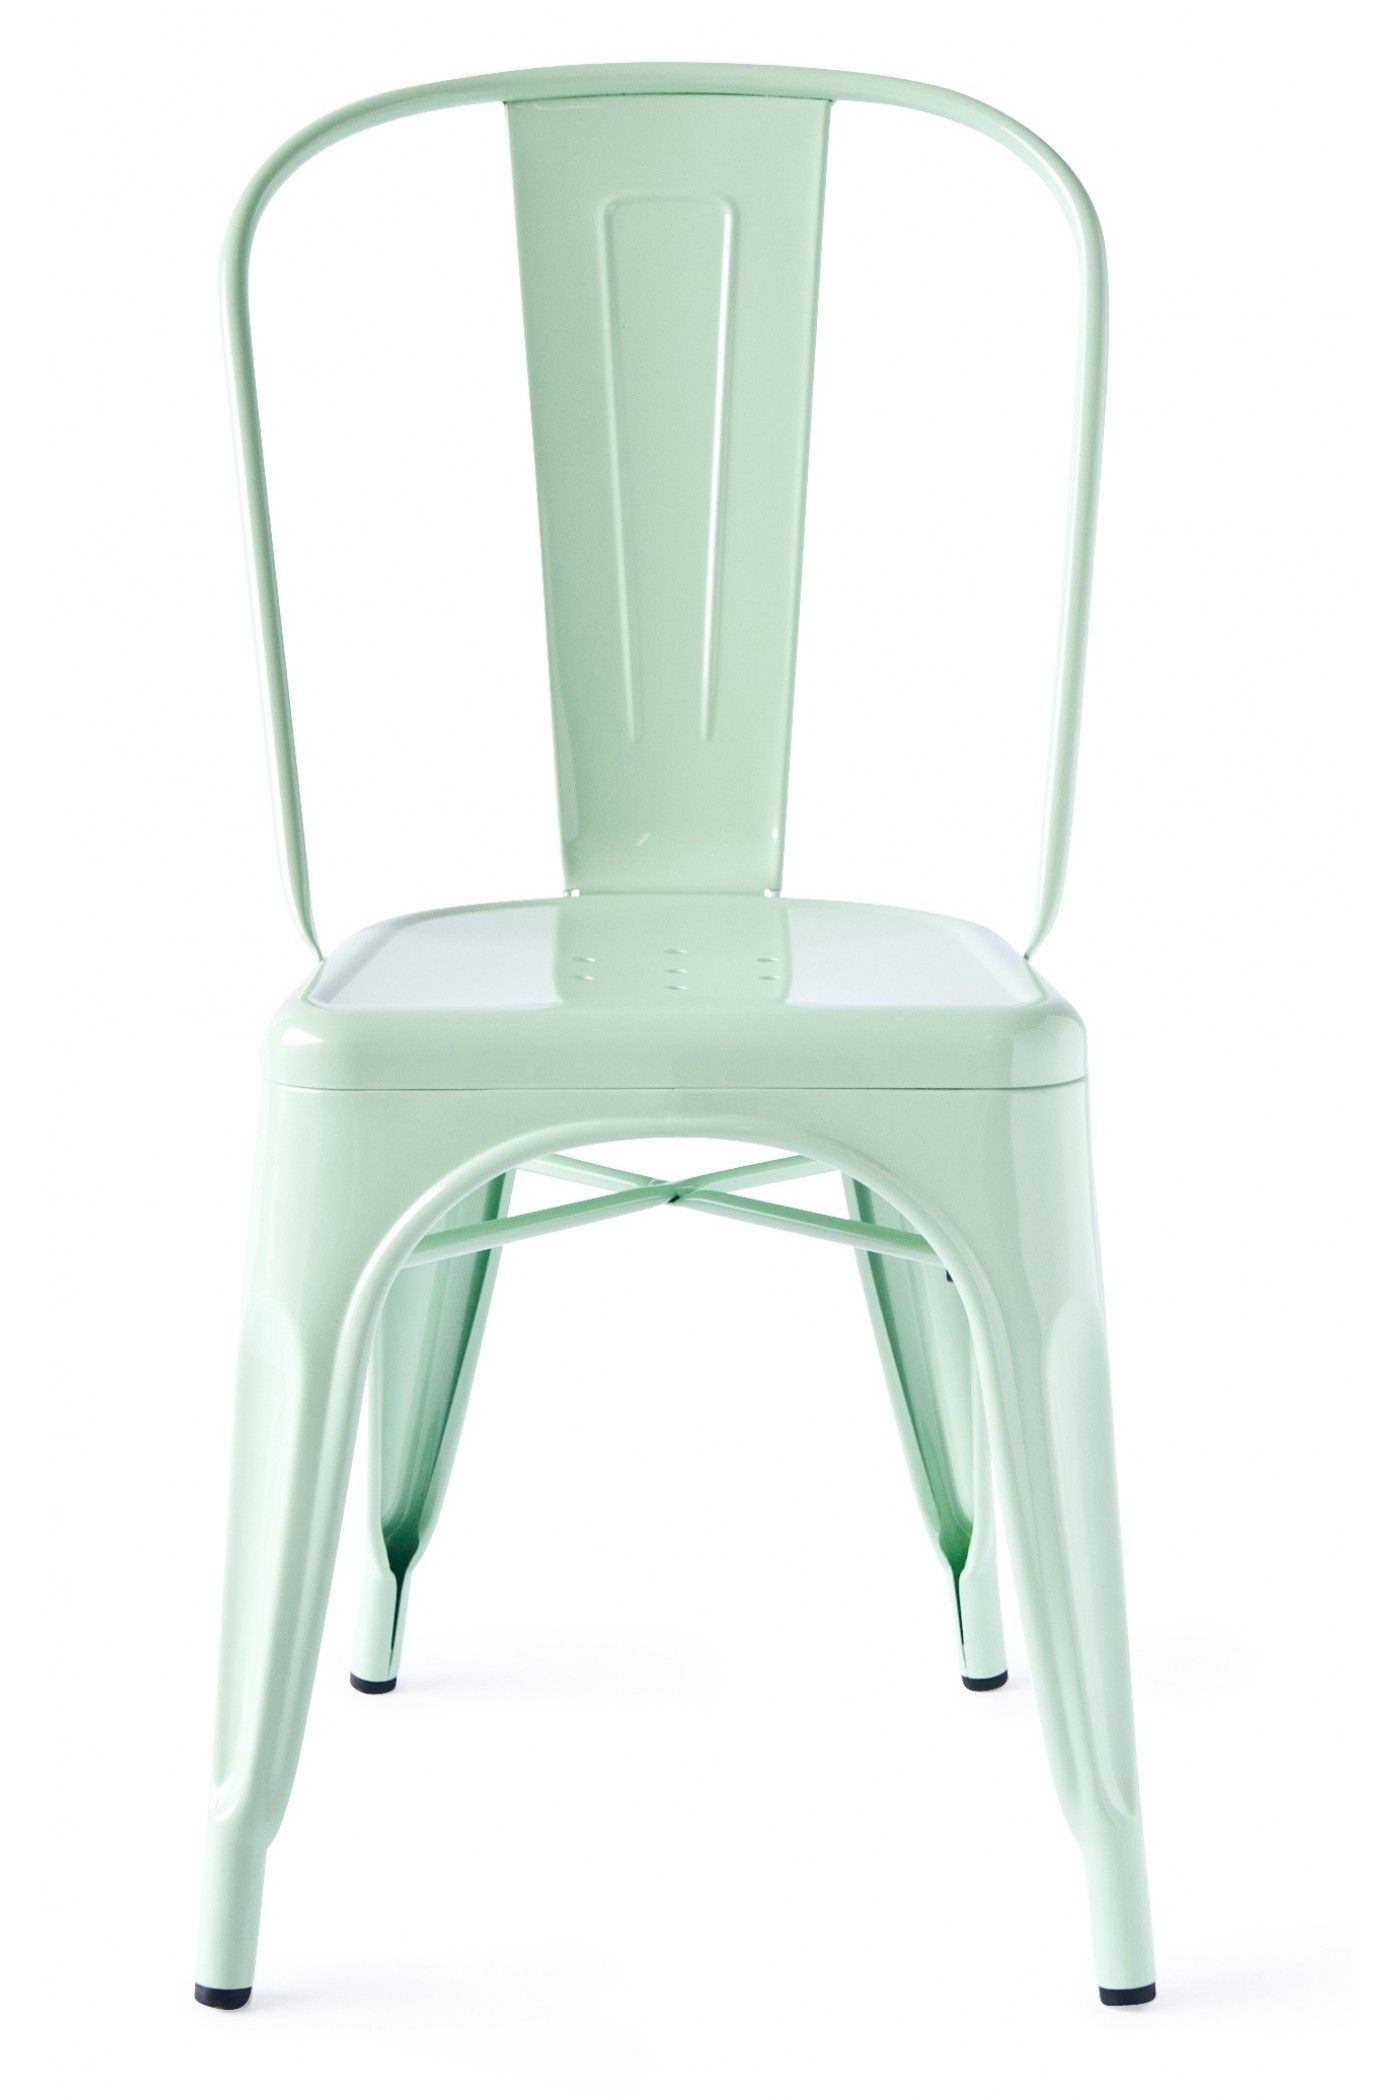 marais a side chair industry west furniture pinterest side